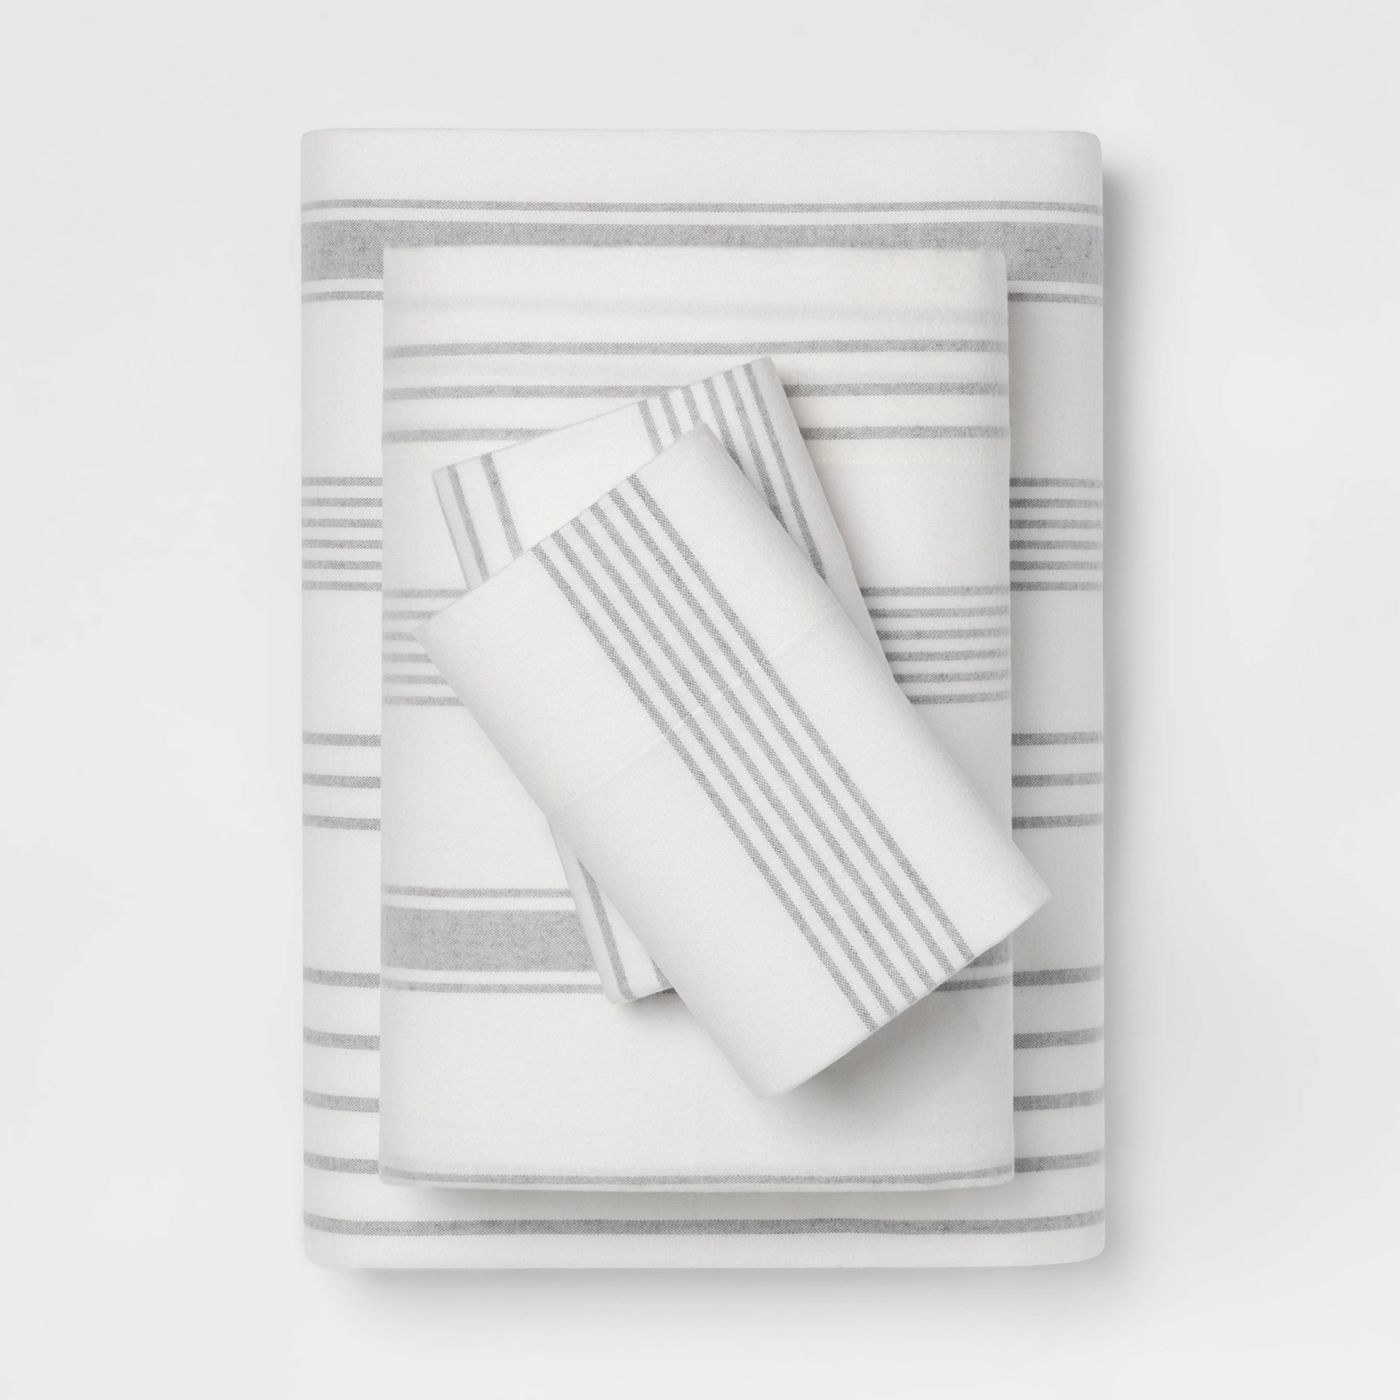 The white and grey striped sheets